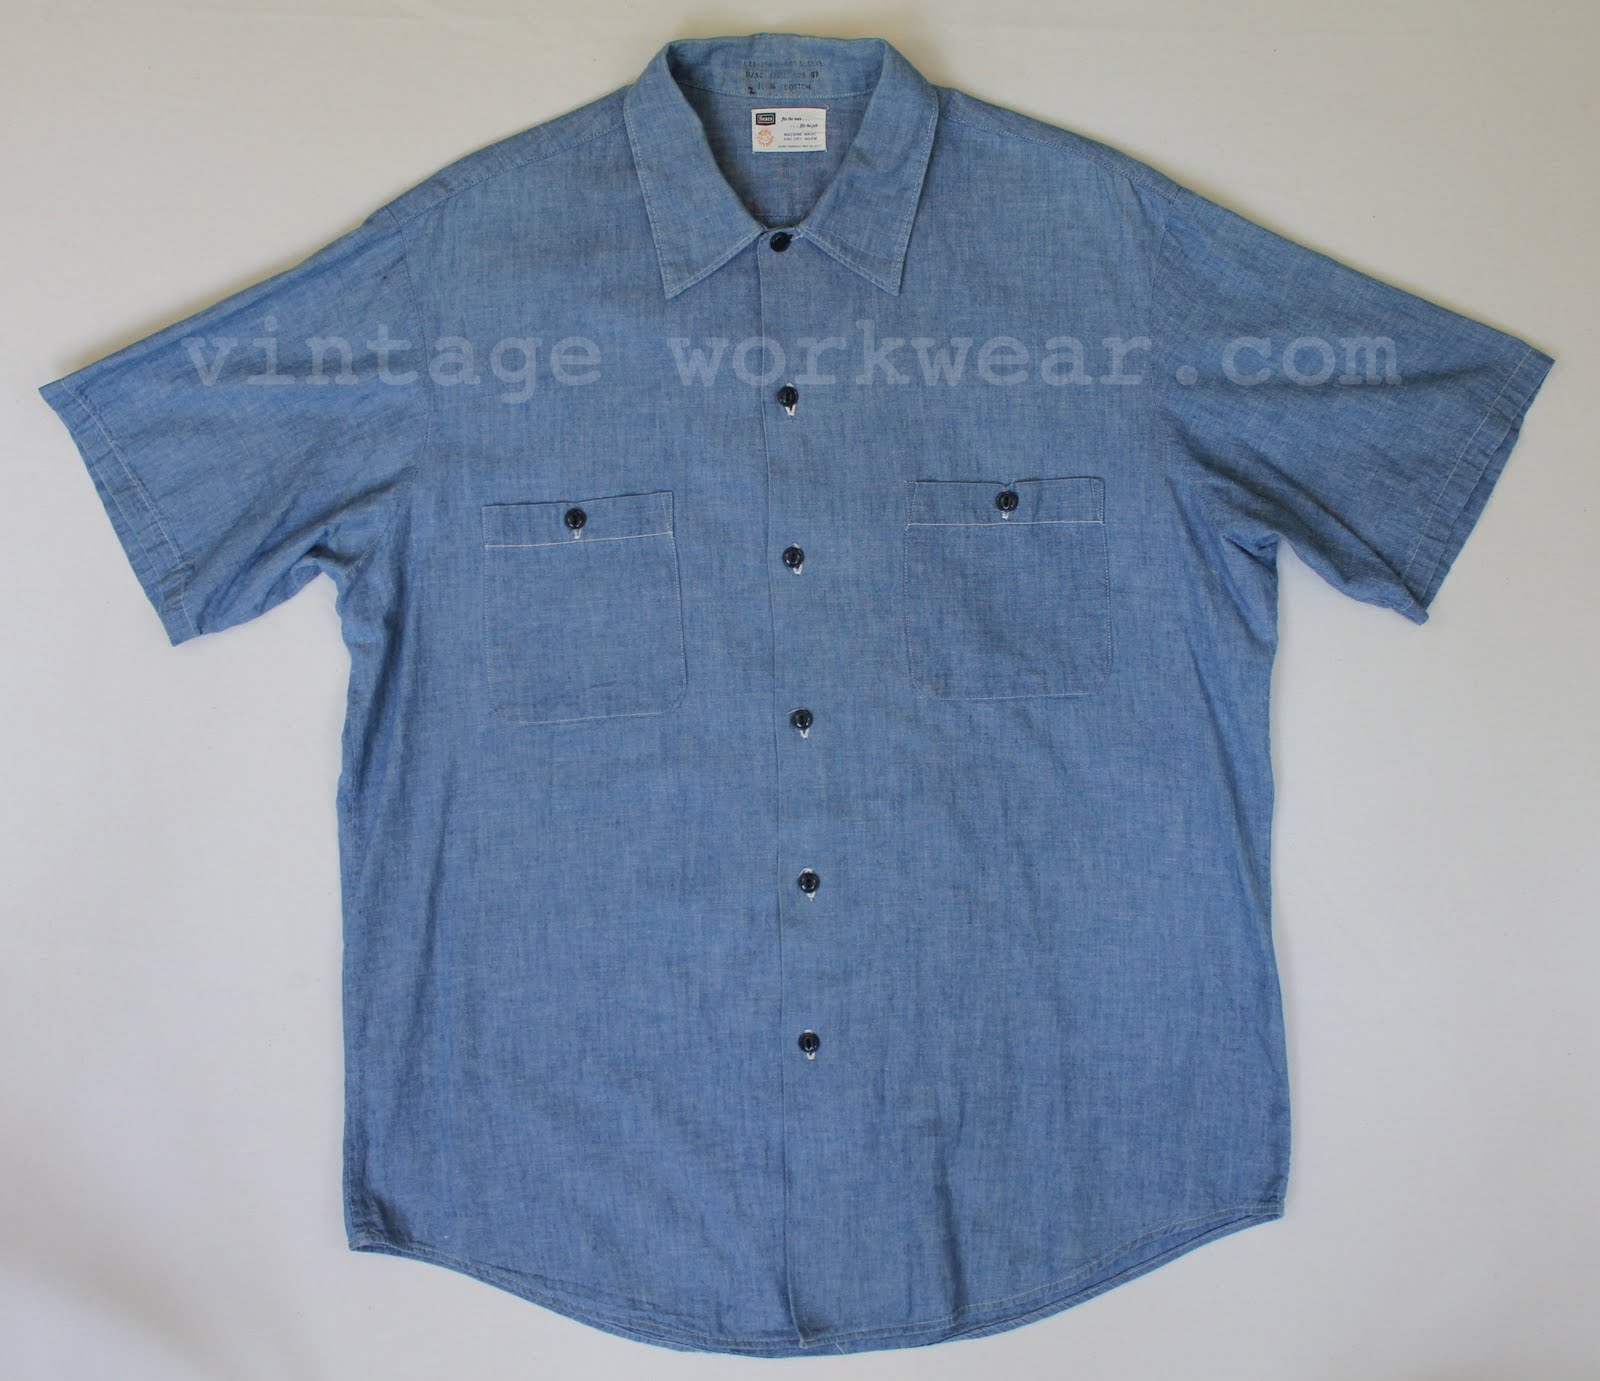 You searched for: sears workwear! Etsy is the home to thousands of handmade, vintage, and one-of-a-kind products and gifts related to your search. No matter what you're looking for or where you are in the world, our global marketplace of sellers can help you find unique and affordable options. Let's get started!